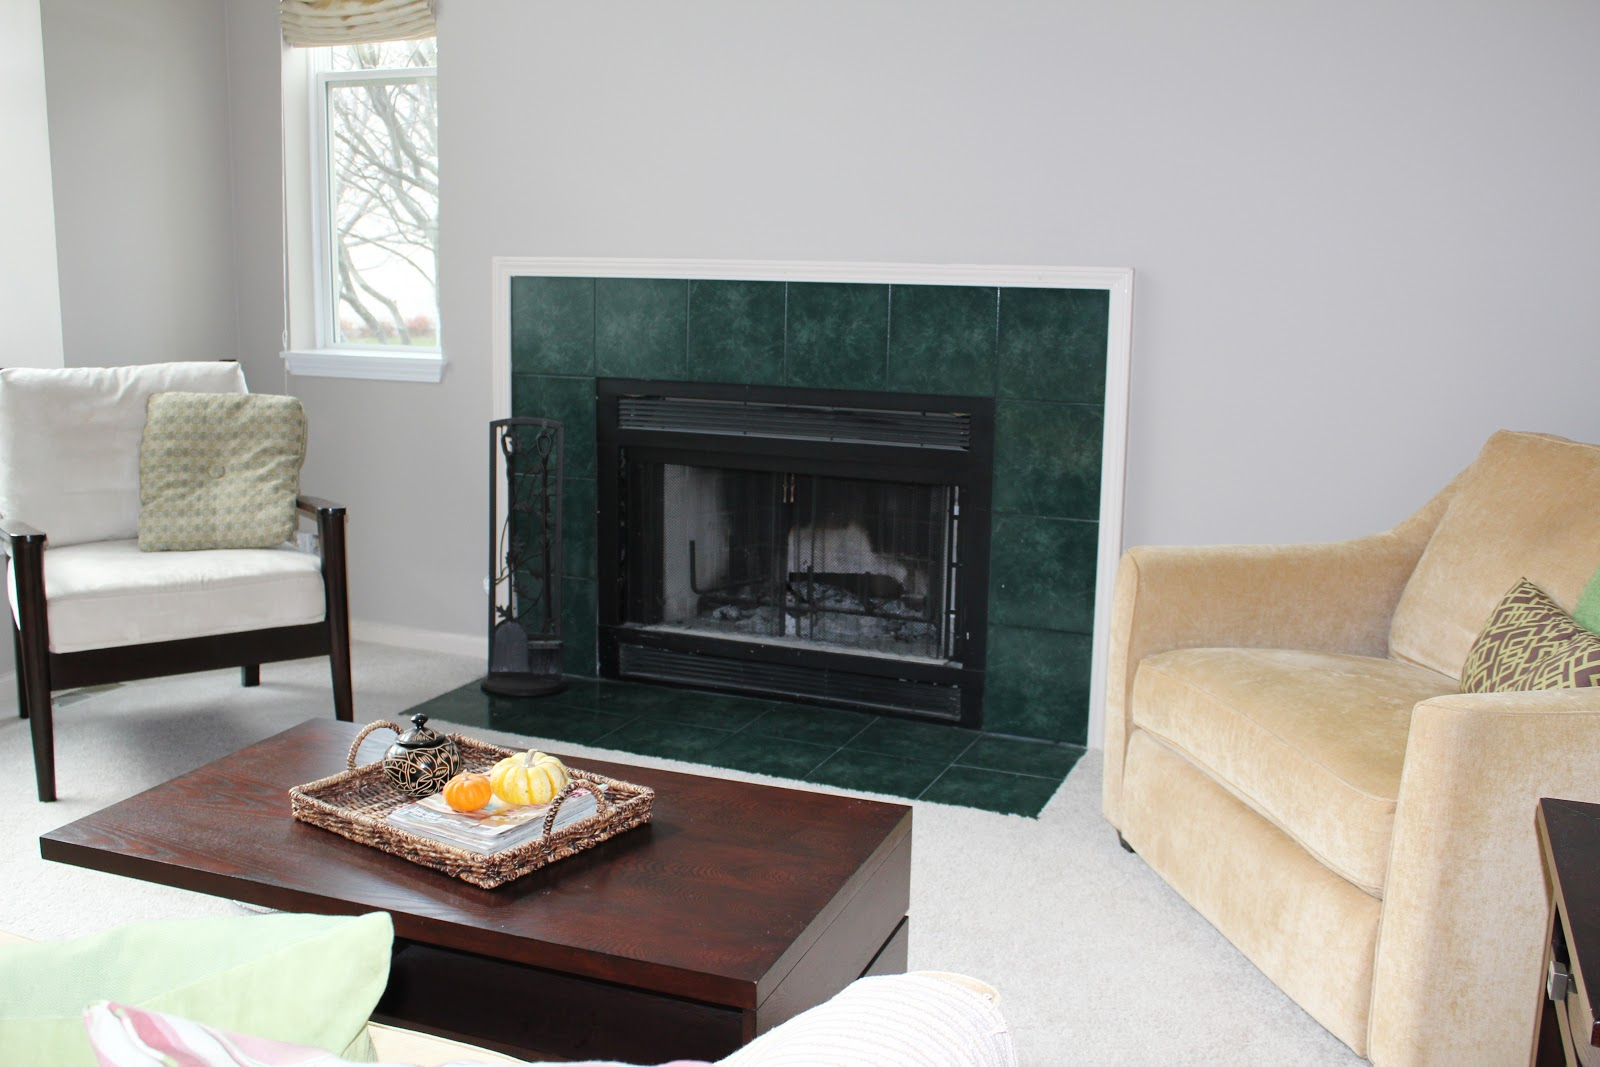 Fireplace remodel the before the happily ever after for Fireplace renovations before and after